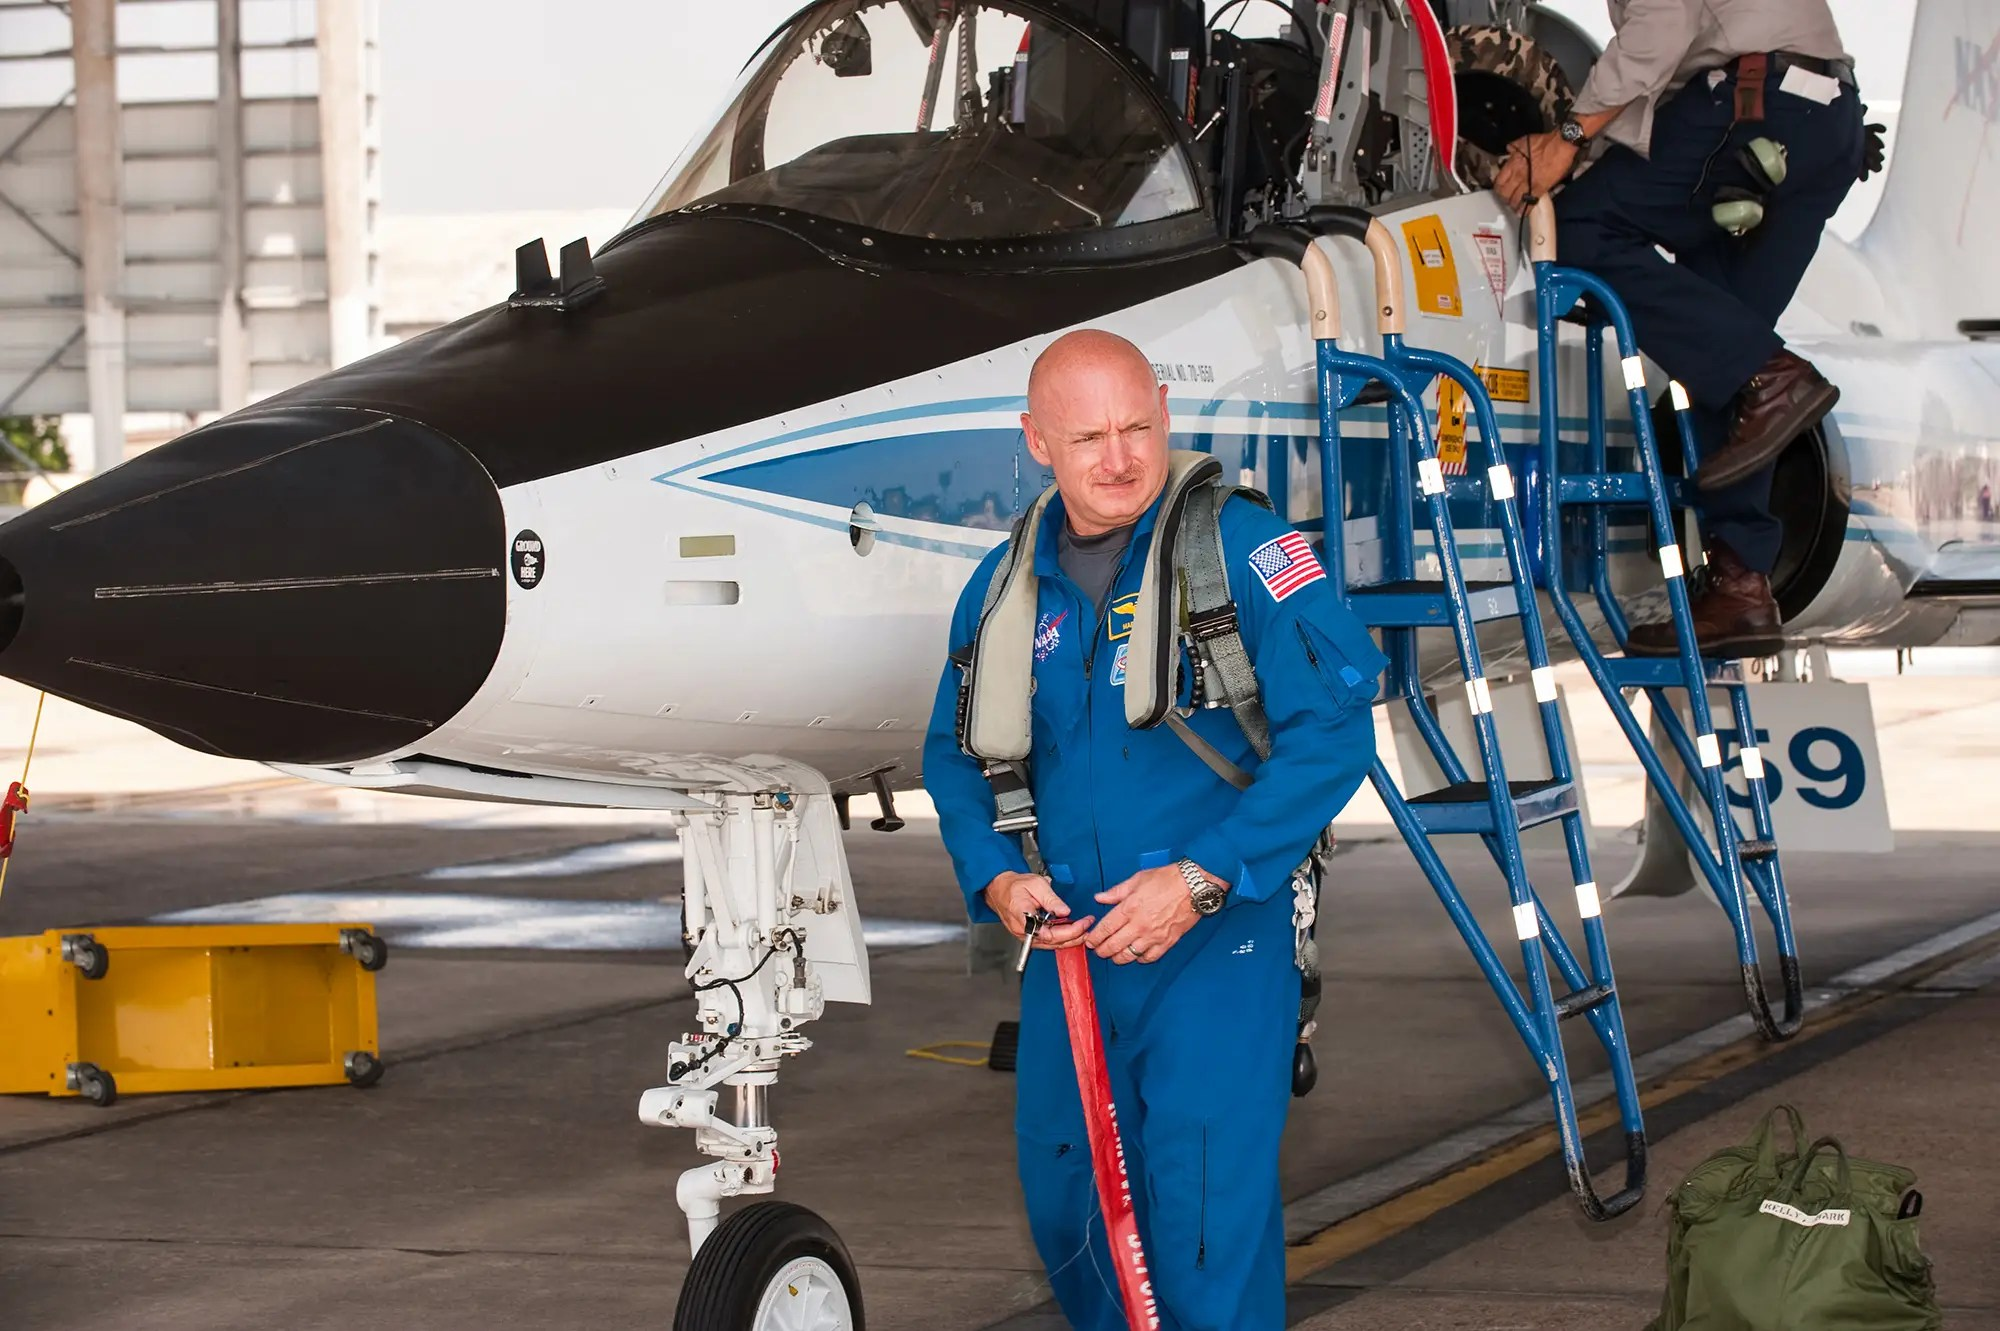 mark kelly nasa astronaut jet pilot nasa jsc2010e119542_orig